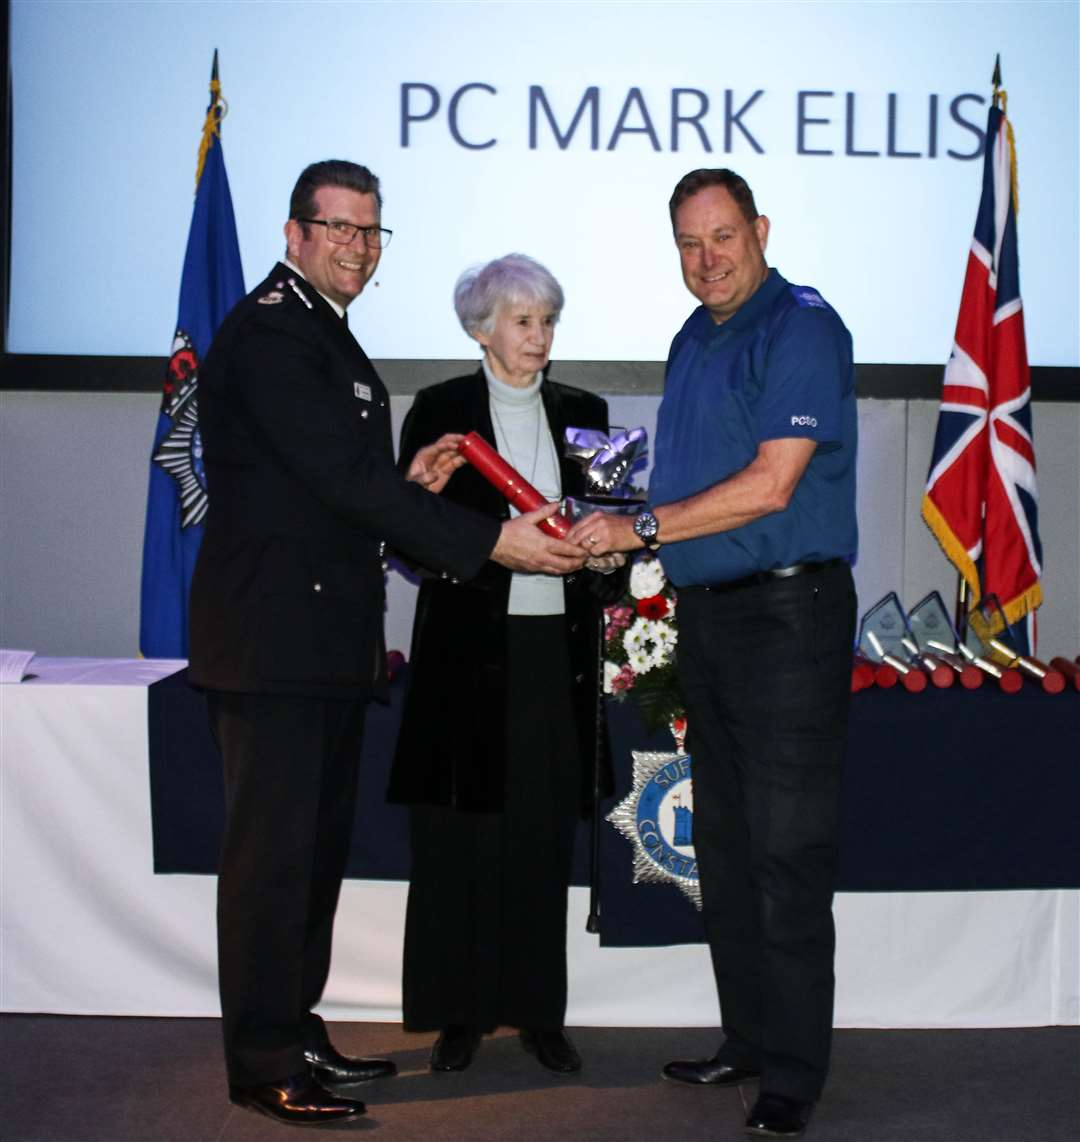 PC Mark Ellis collects his award from Chief Constable Gareth Wilson and Lilias Sheepshanks OBE. Picture: Suffolk Constabulary (7838962)